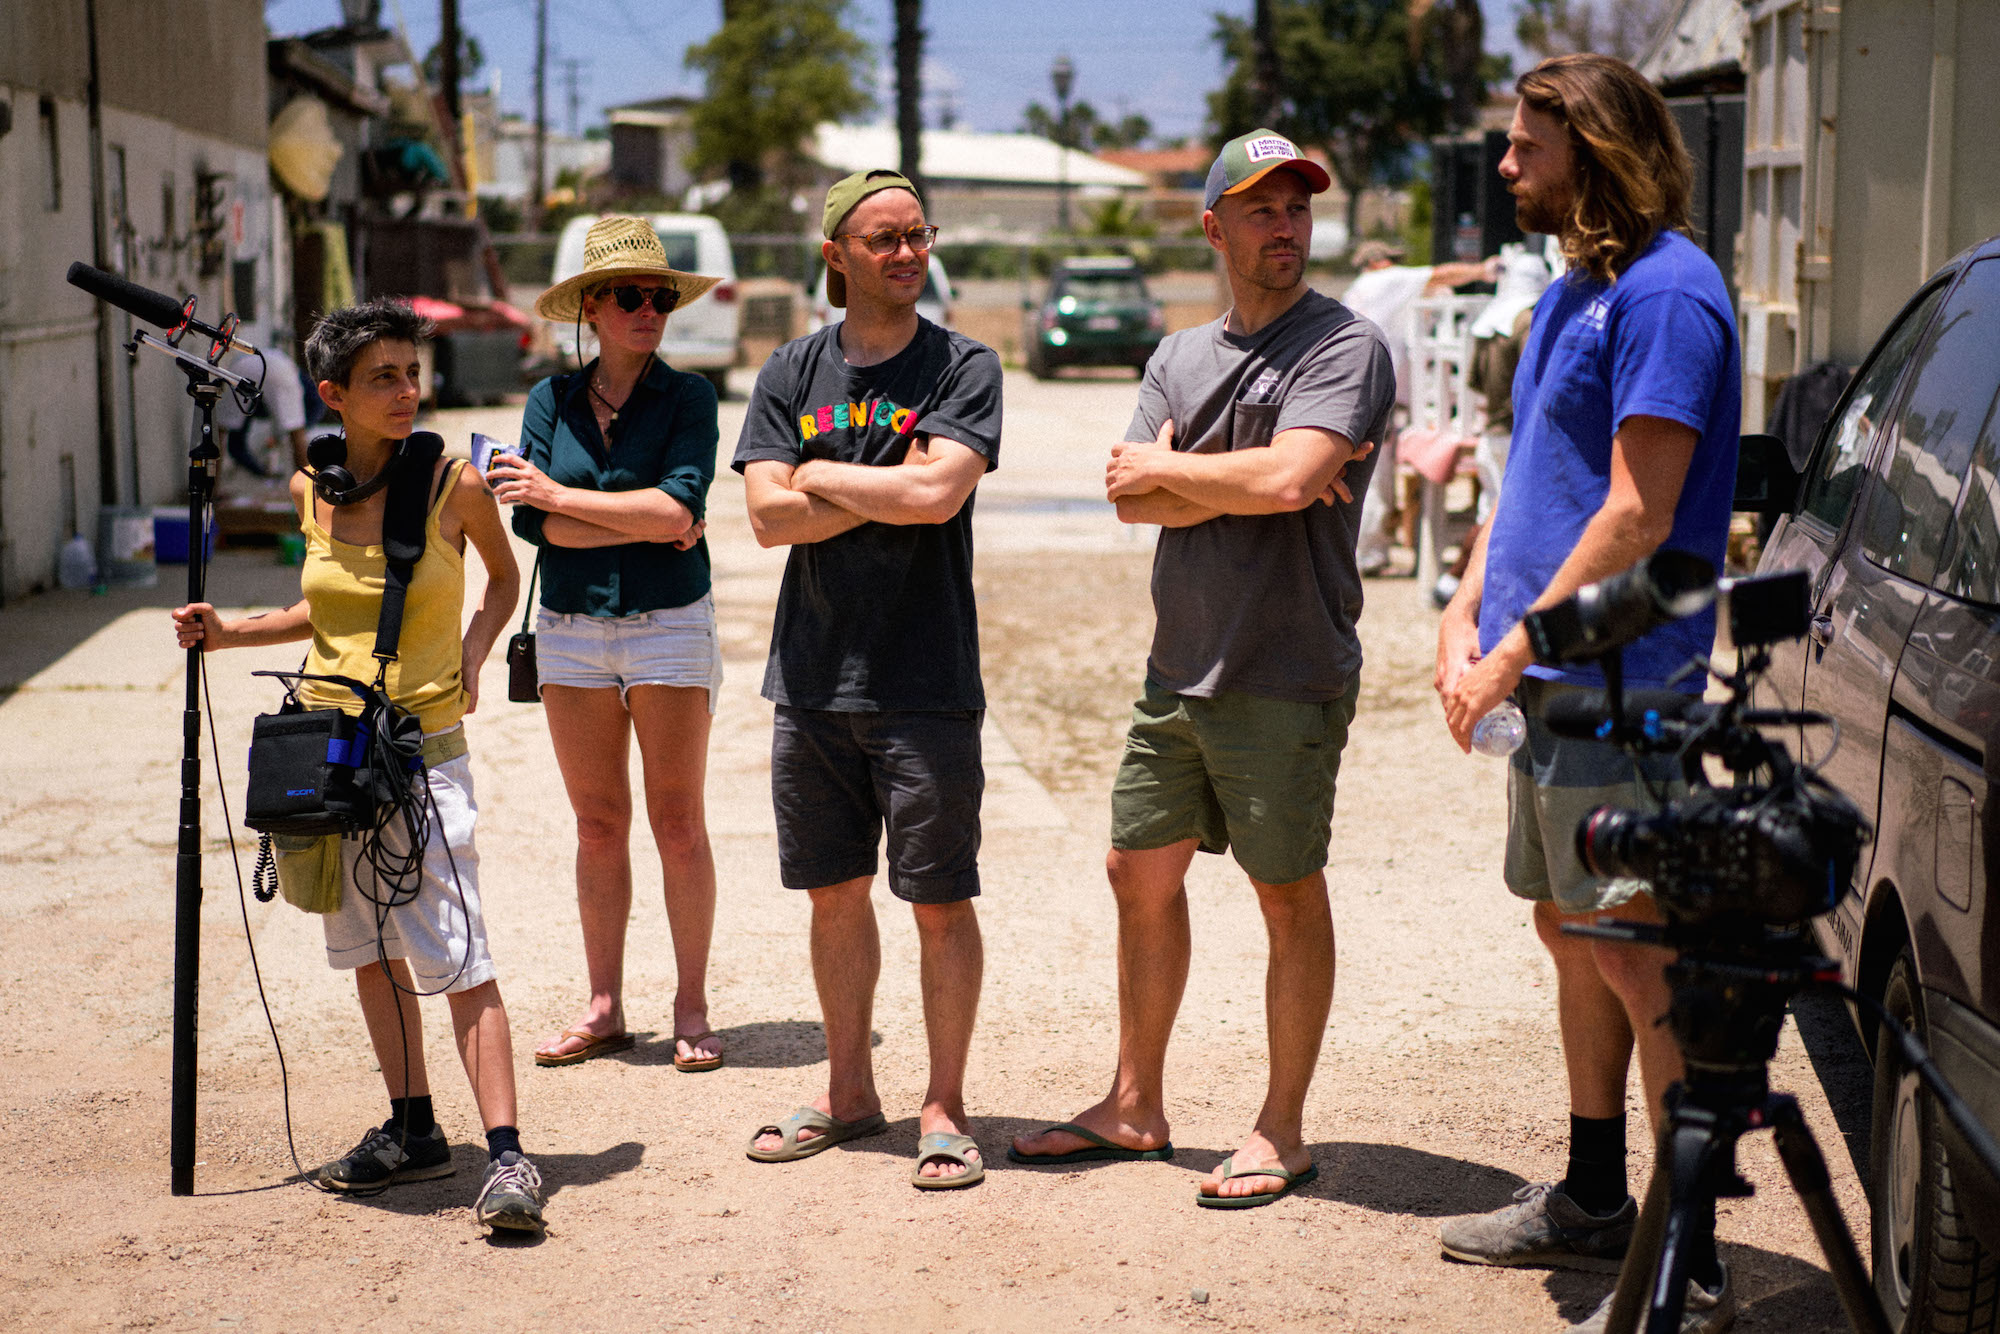 """Behind the scenes of surf mockumentary """"The Outrider"""""""